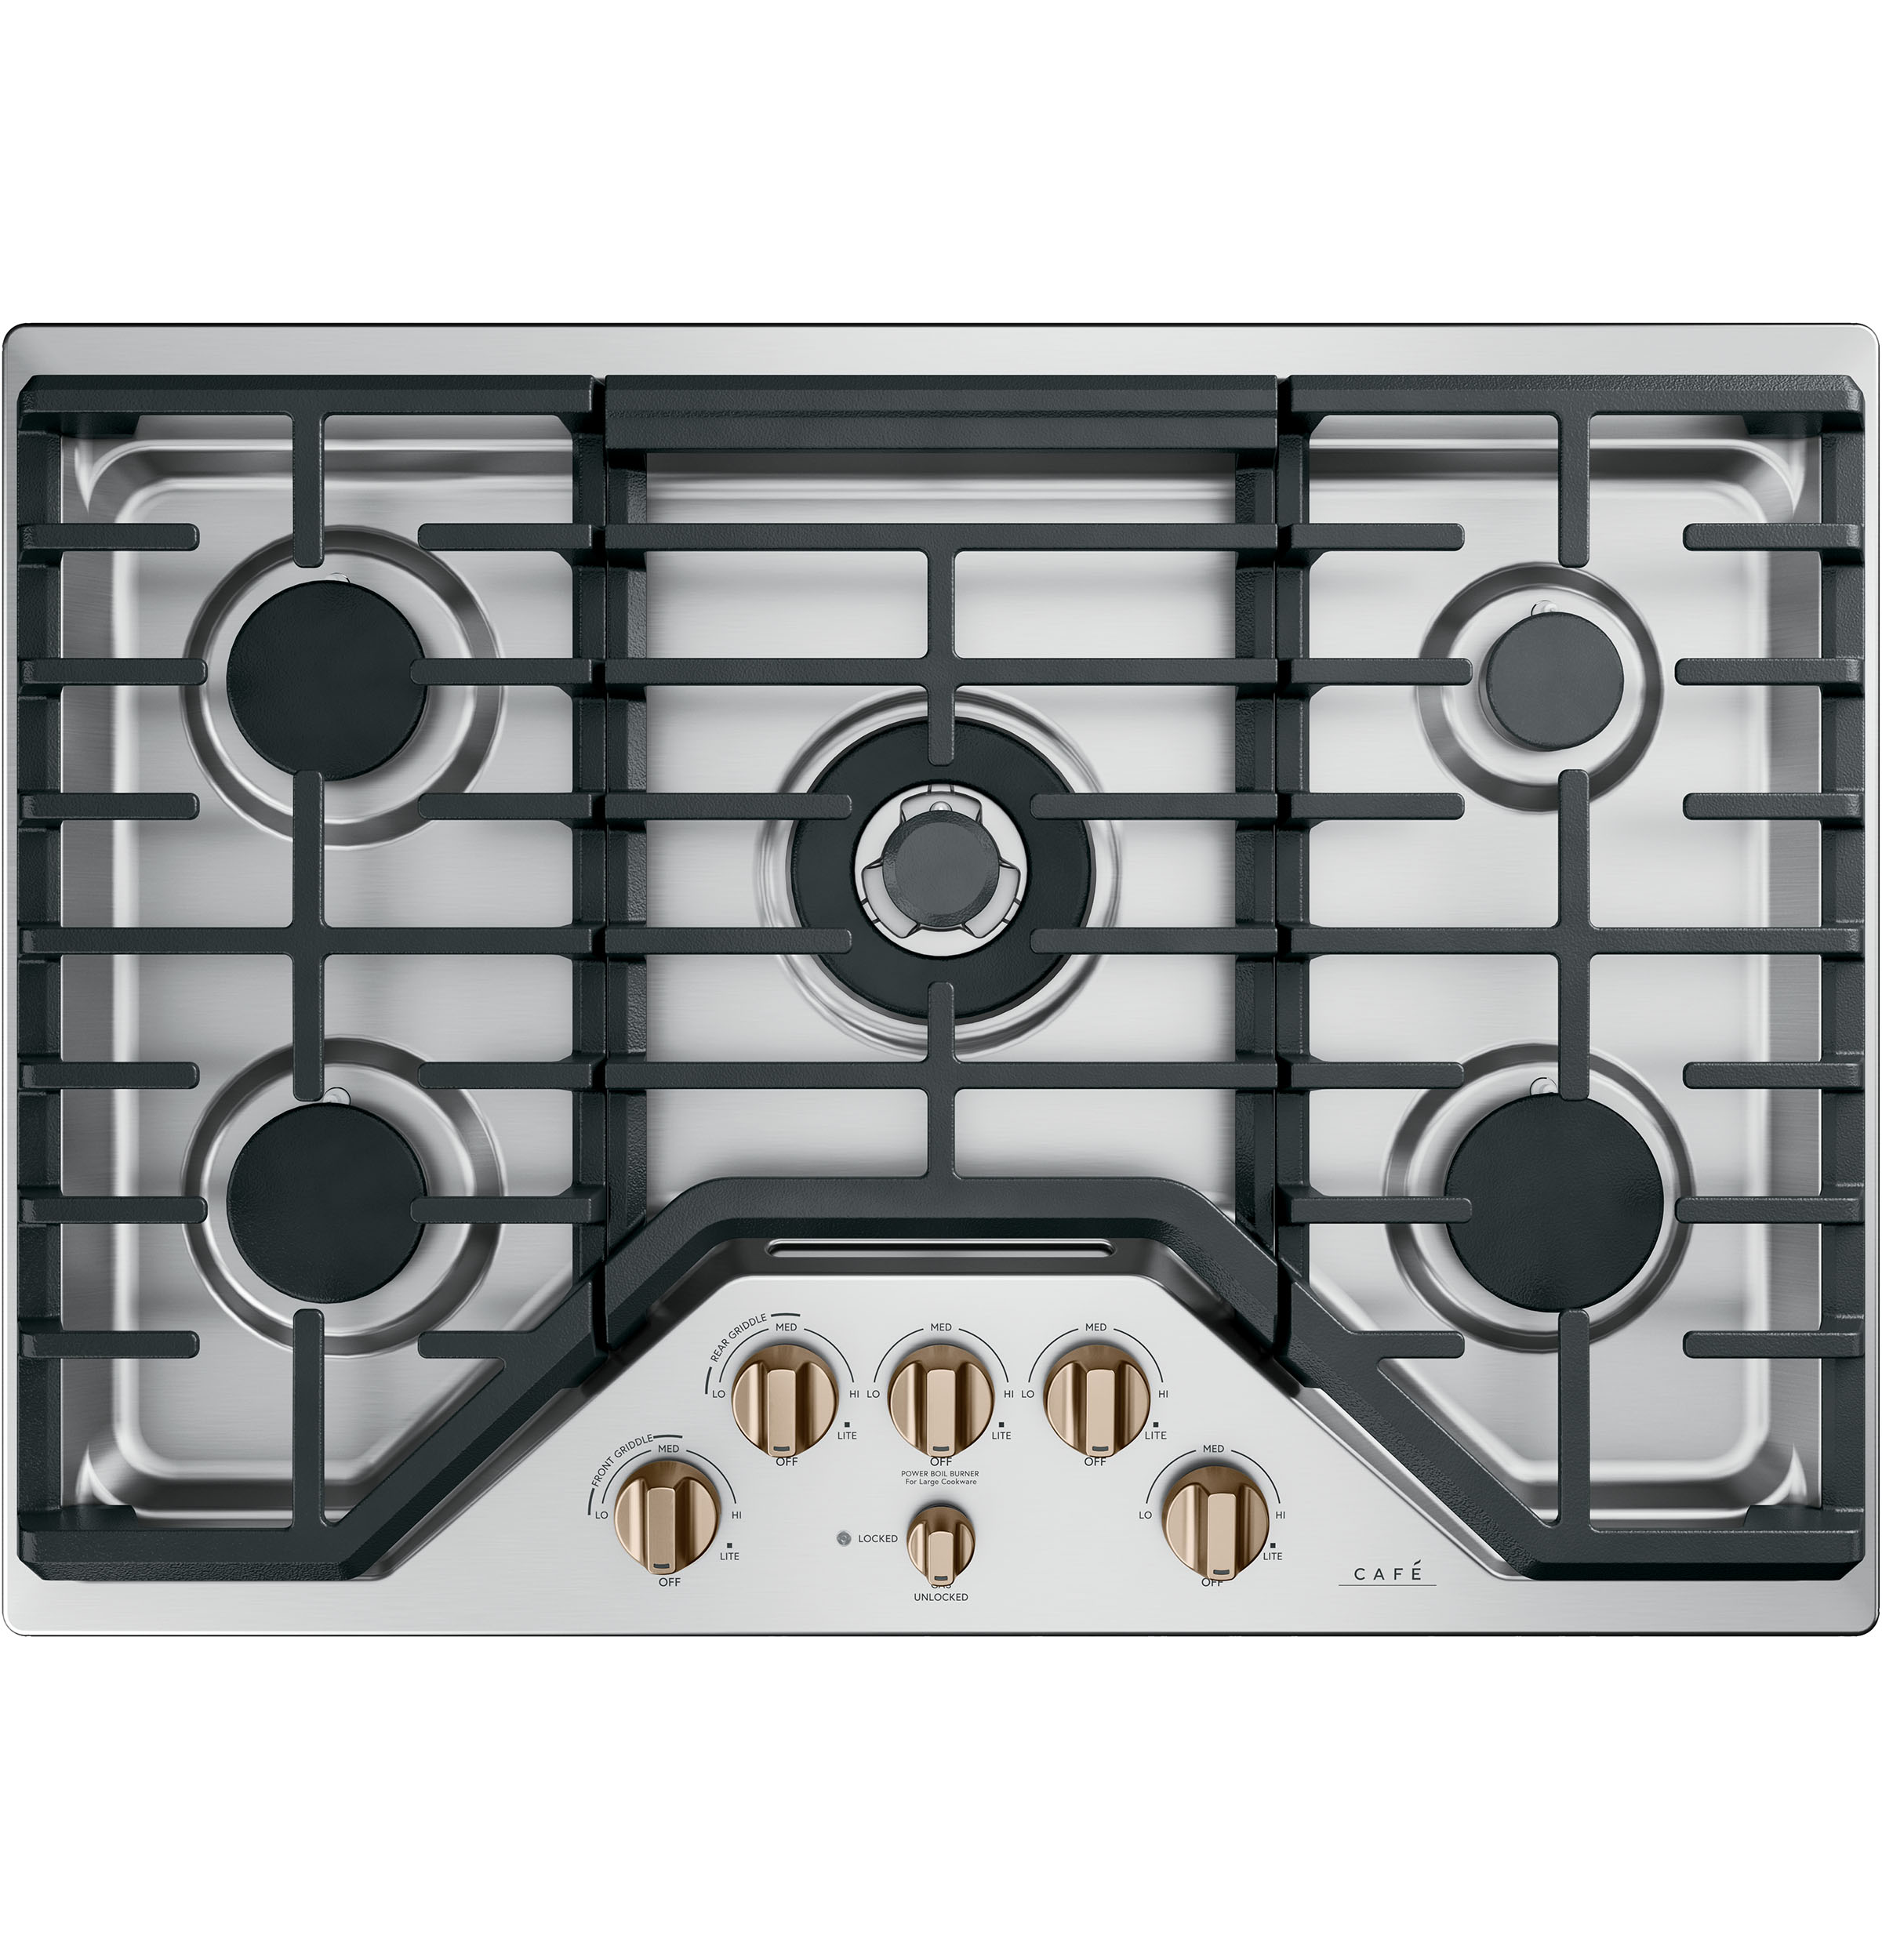 Cafe 5 Gas Cooktop Knobs - Brushed Bronze